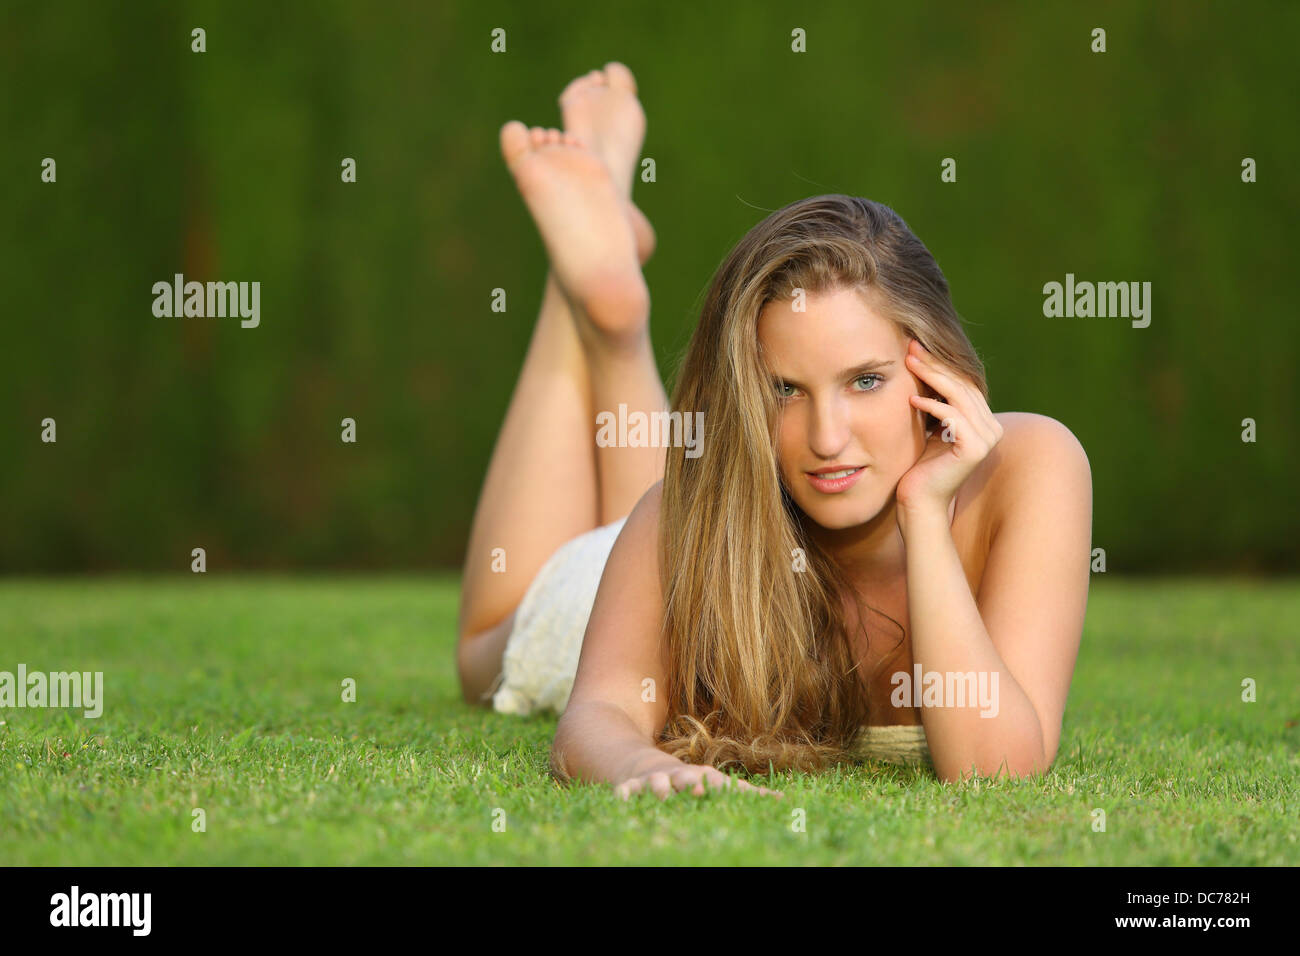 Attractive Sweet Blonde Girl Posing Lying On The Lawn In A Park Looking At Camera